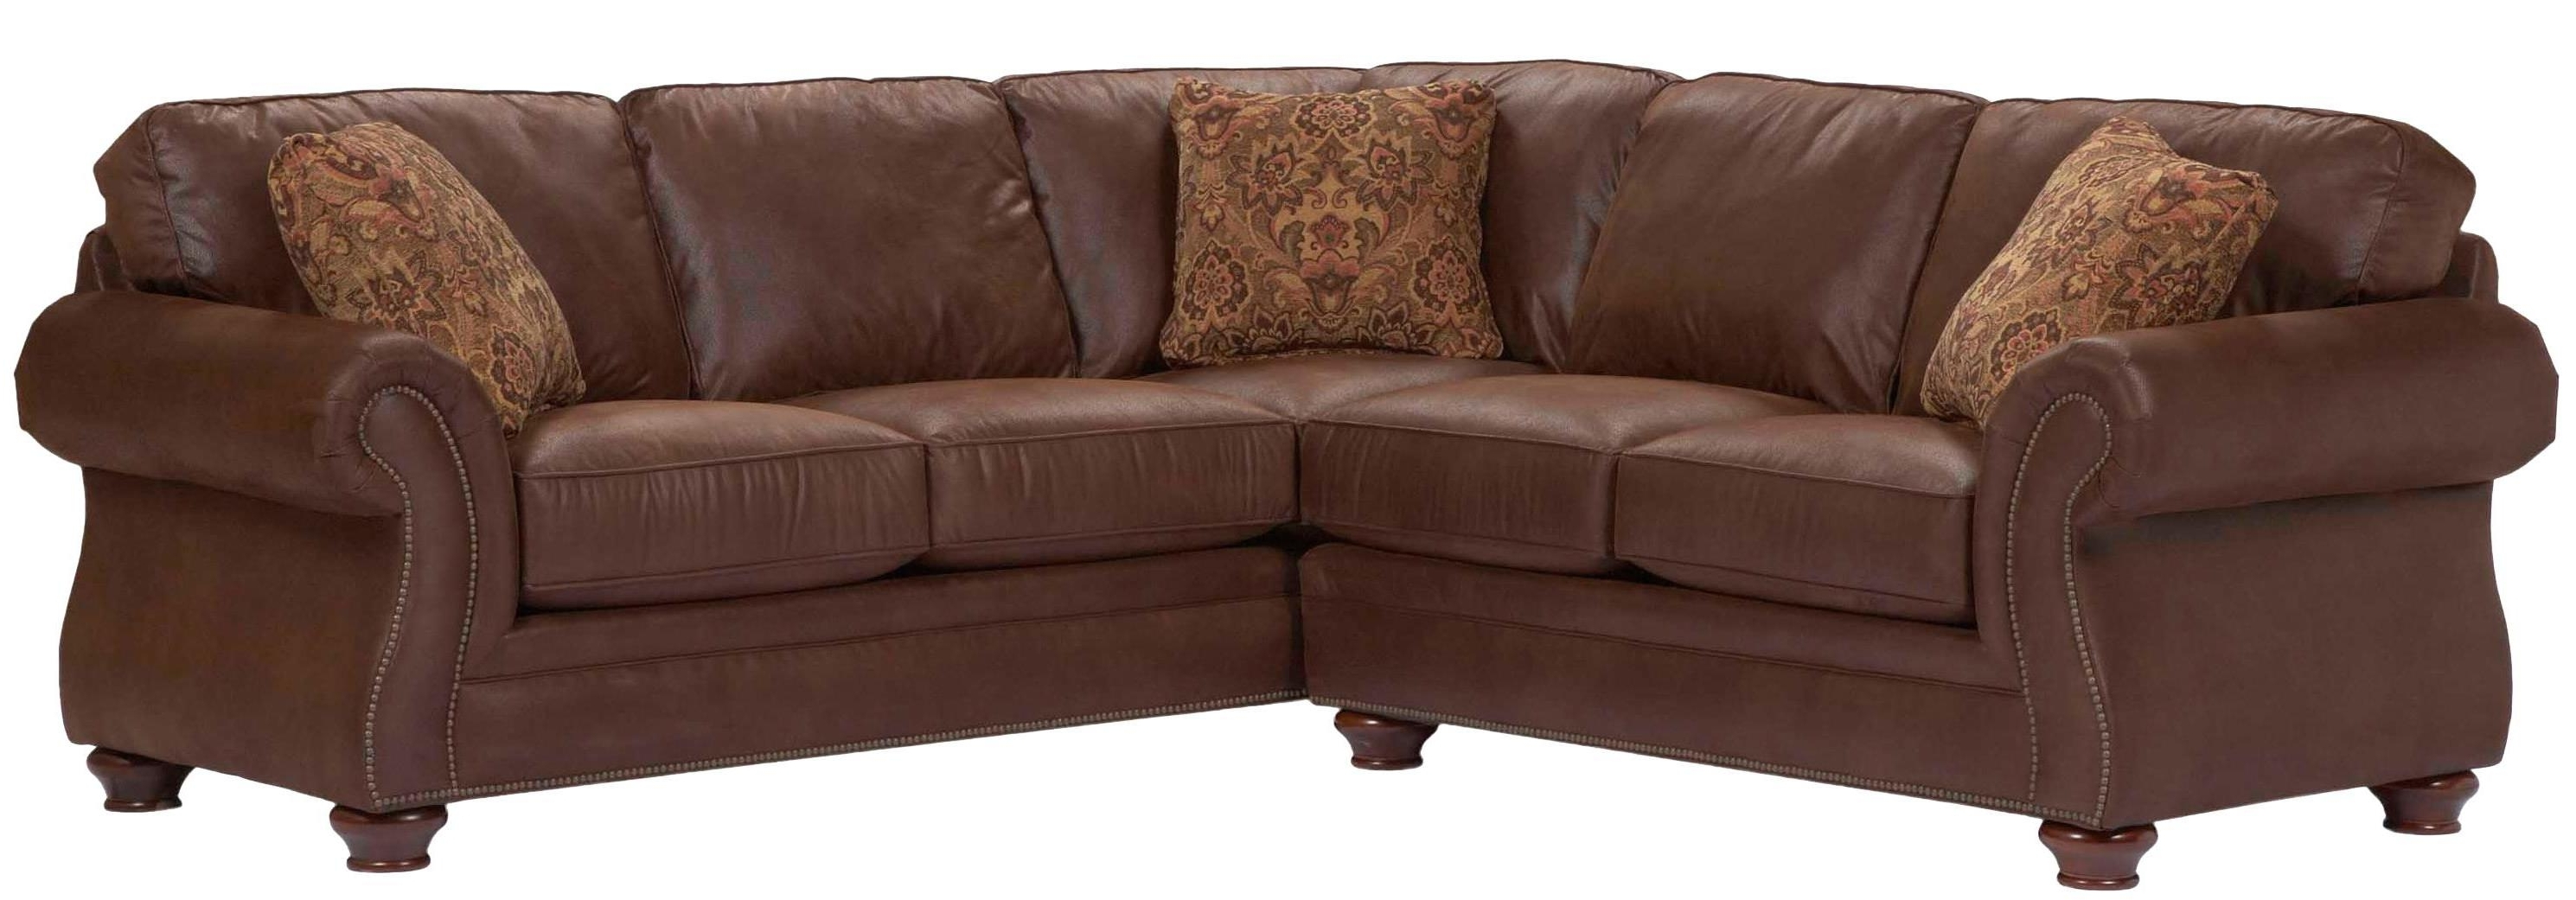 Wayside Within Most Recent Broyhill Sectional Sofas (View 12 of 20)